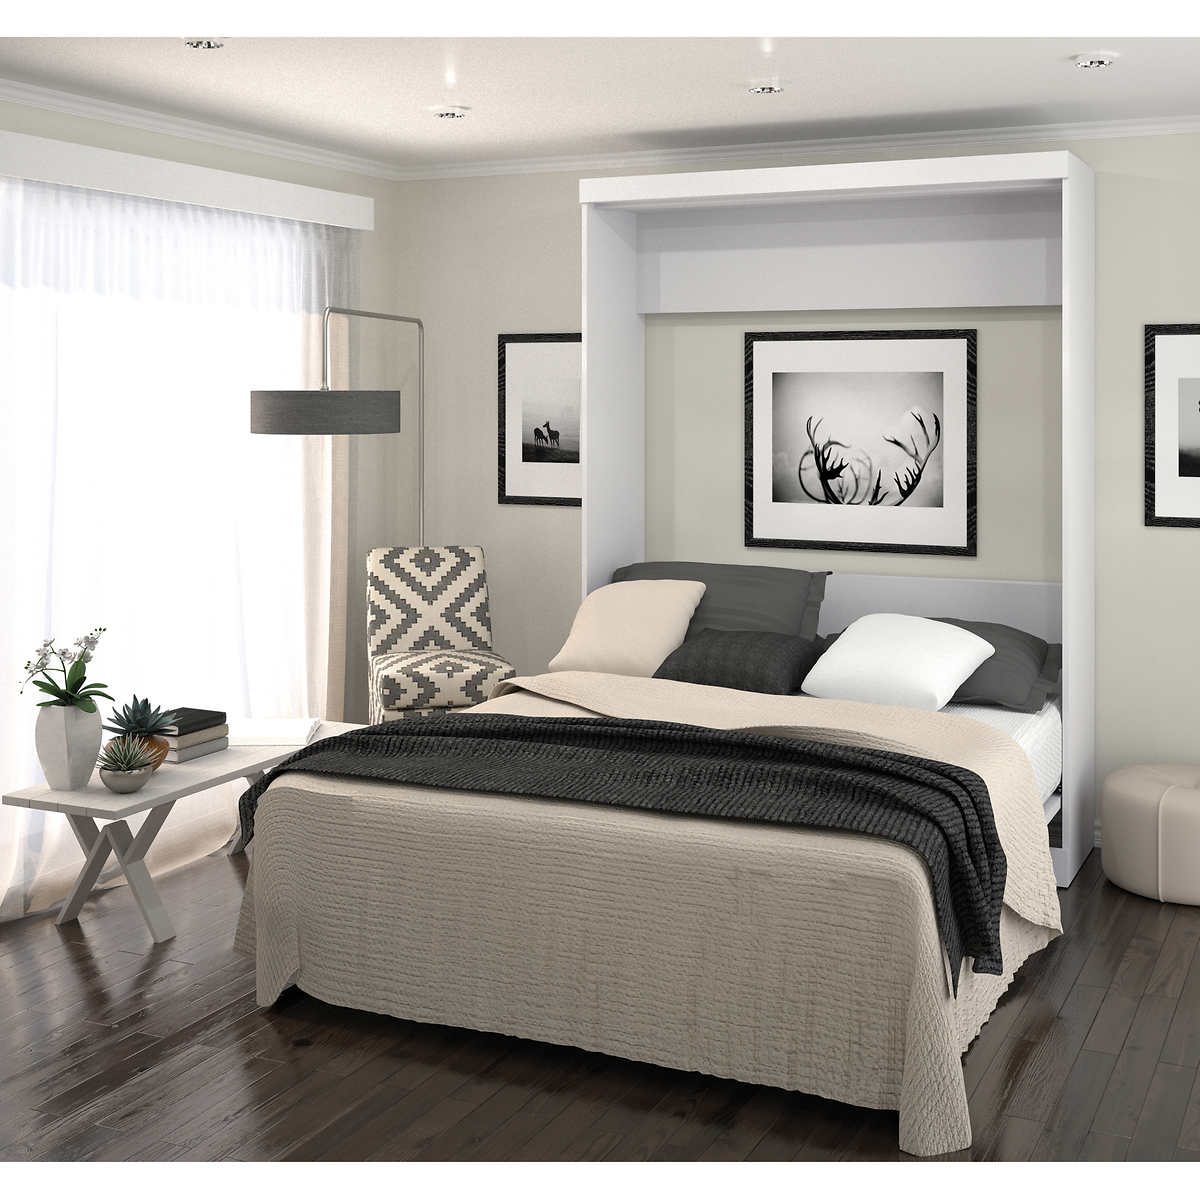 California closets murphy bed - Boutique Queen Wall Bed In White